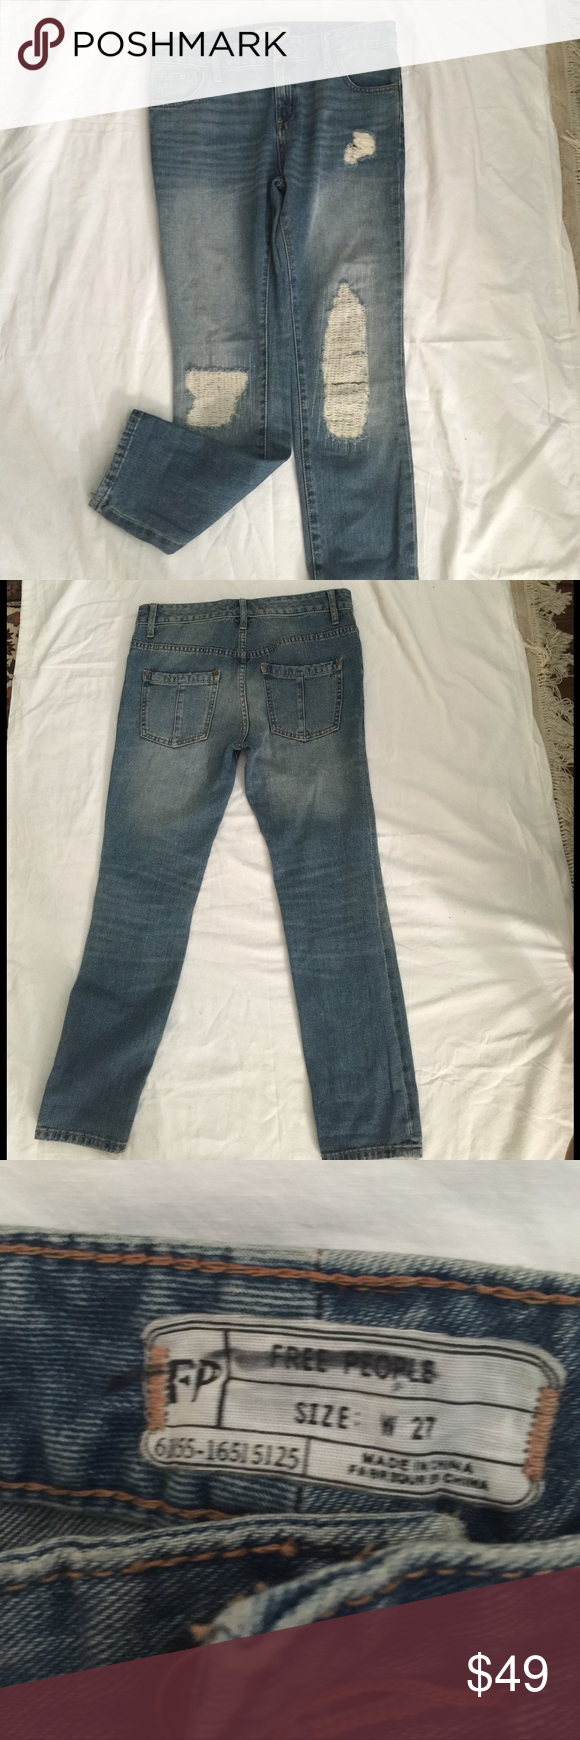 Free people distressed jeans Super cute free people jeans. Hardly been worn. Still in great condition! Size 27 but I think it might run a little small! Free People Jeans